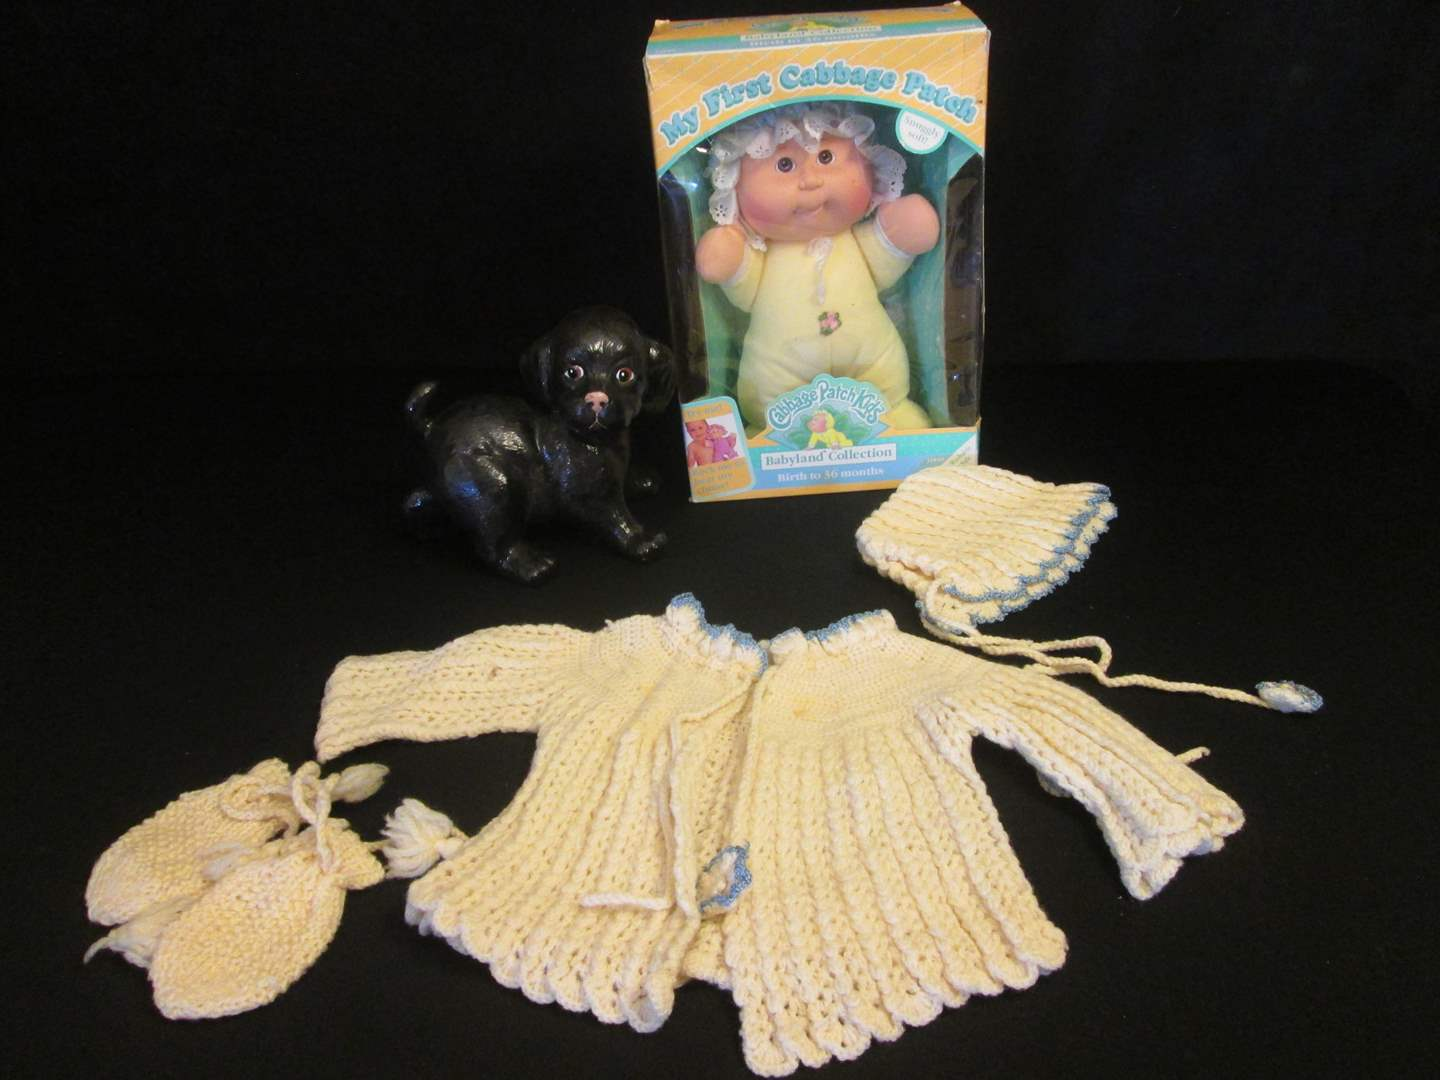 Lot # 82 - Cabbage Patch Kid NIB, Dog, Vintage Baby Outfit  (main image)